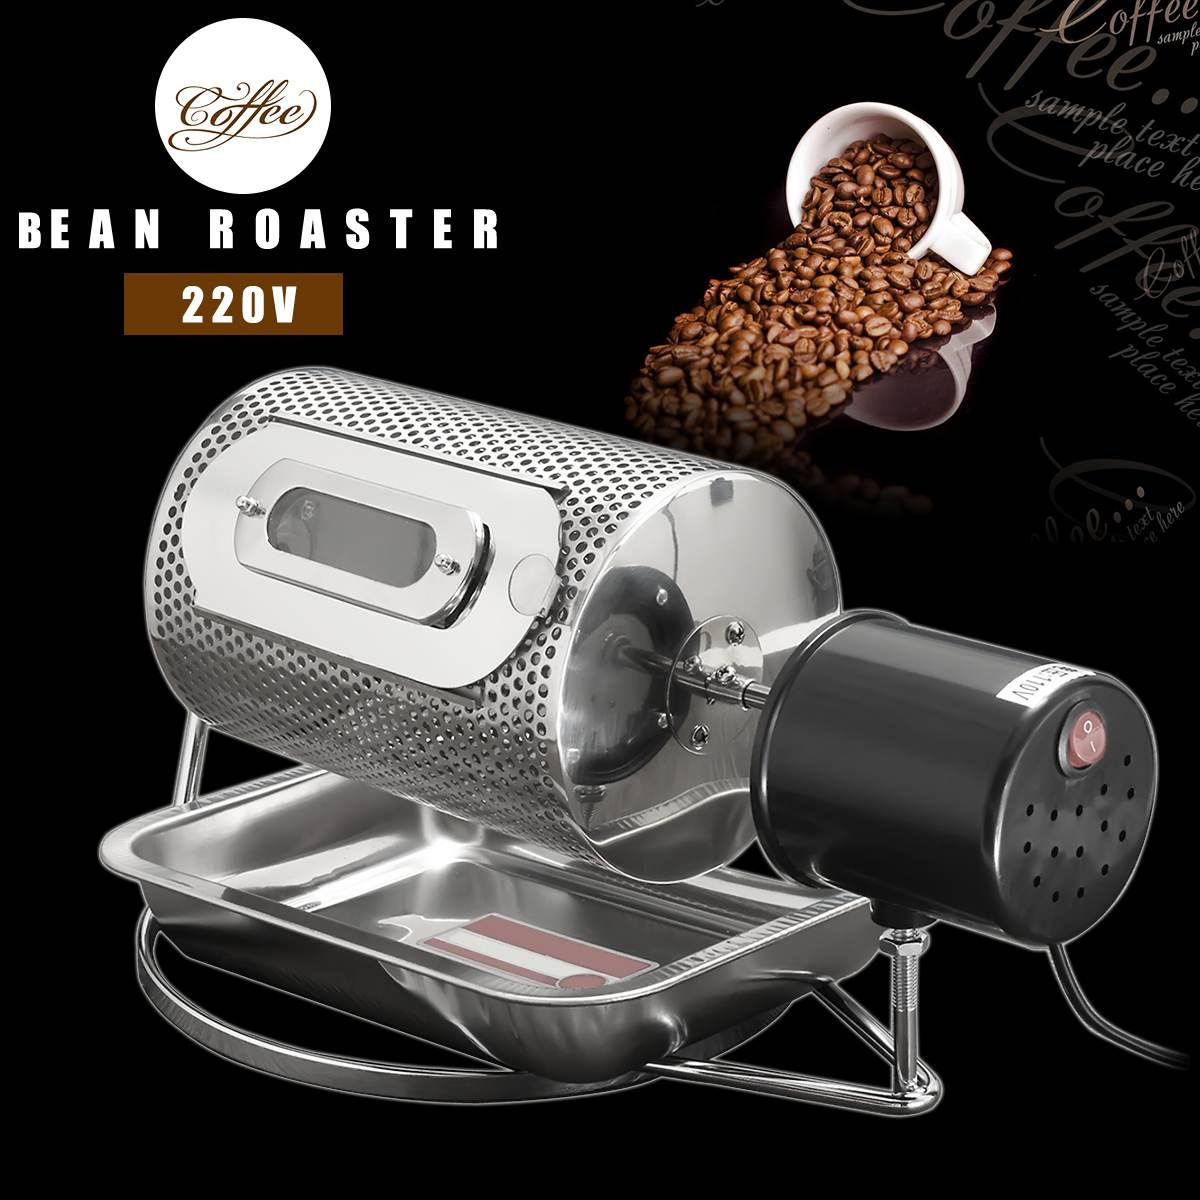 Becornce Stainless Steel Coffee Bean Roasting Machine Coffee Roaster Roller Baker 220V Tools Baking Fry Peanut Grain Nuts Dryer(China)